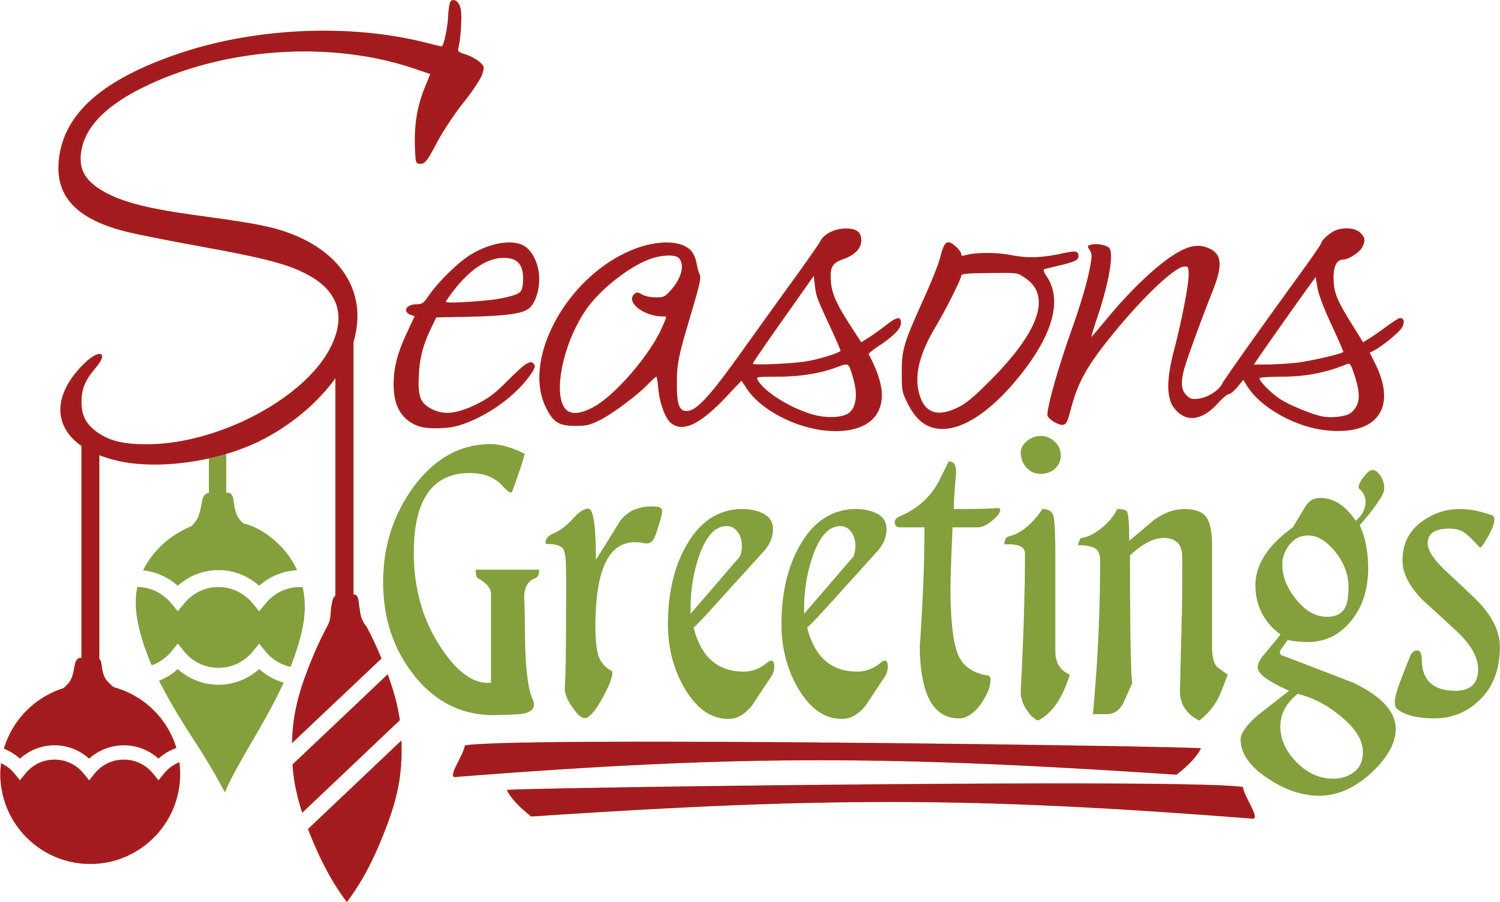 Season greetings words engneforic season greetings words m4hsunfo